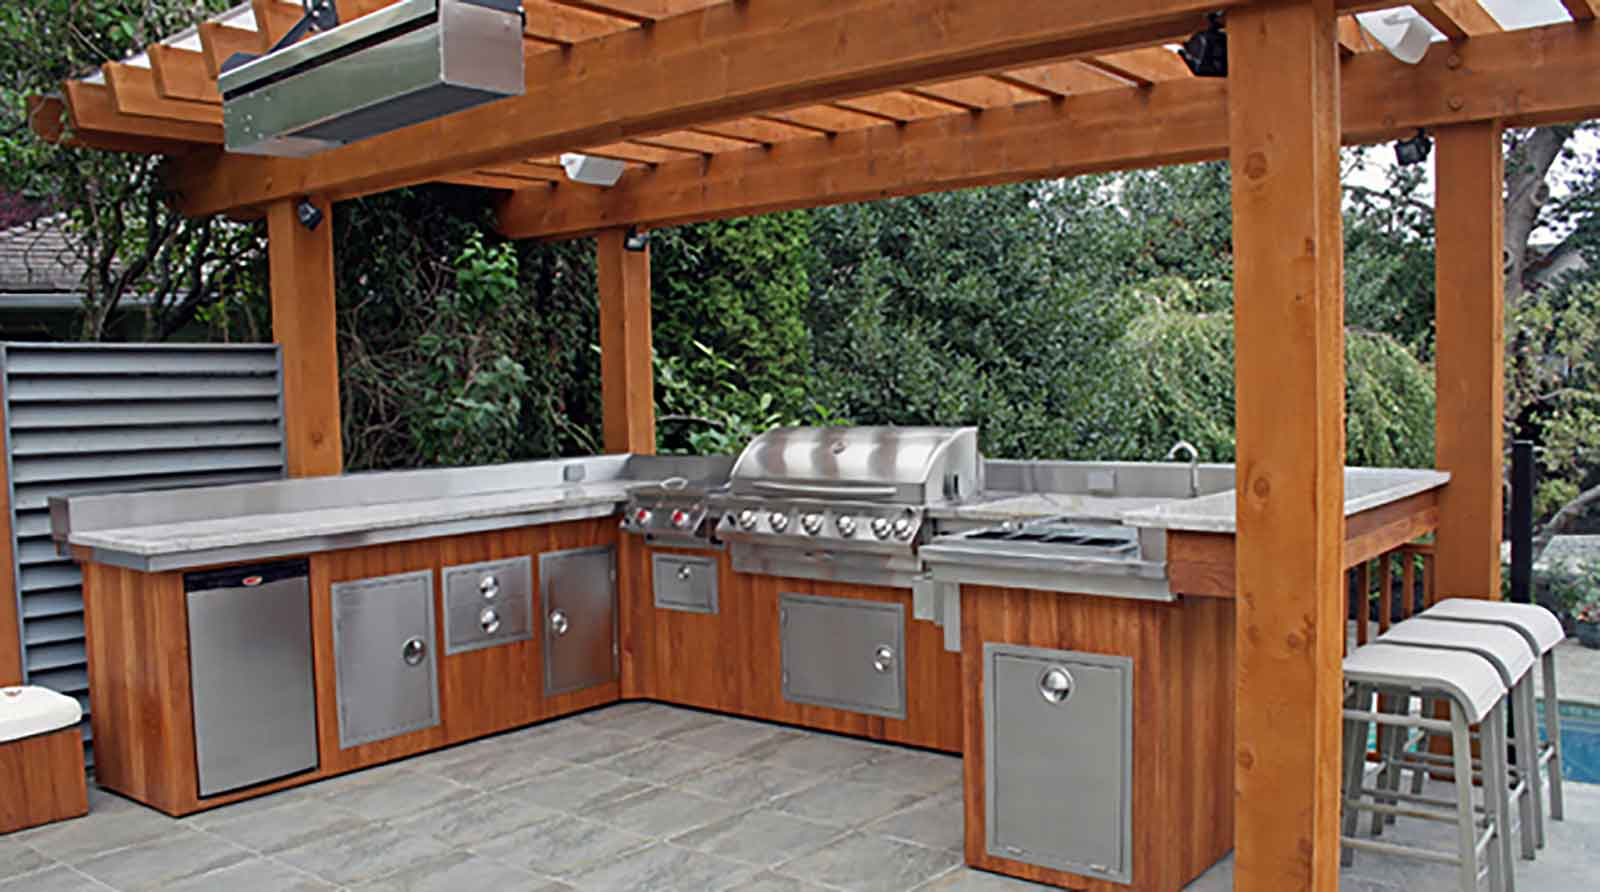 Custom designed outdoor kitchens azuro concepts for Outdoor bbq designs plans